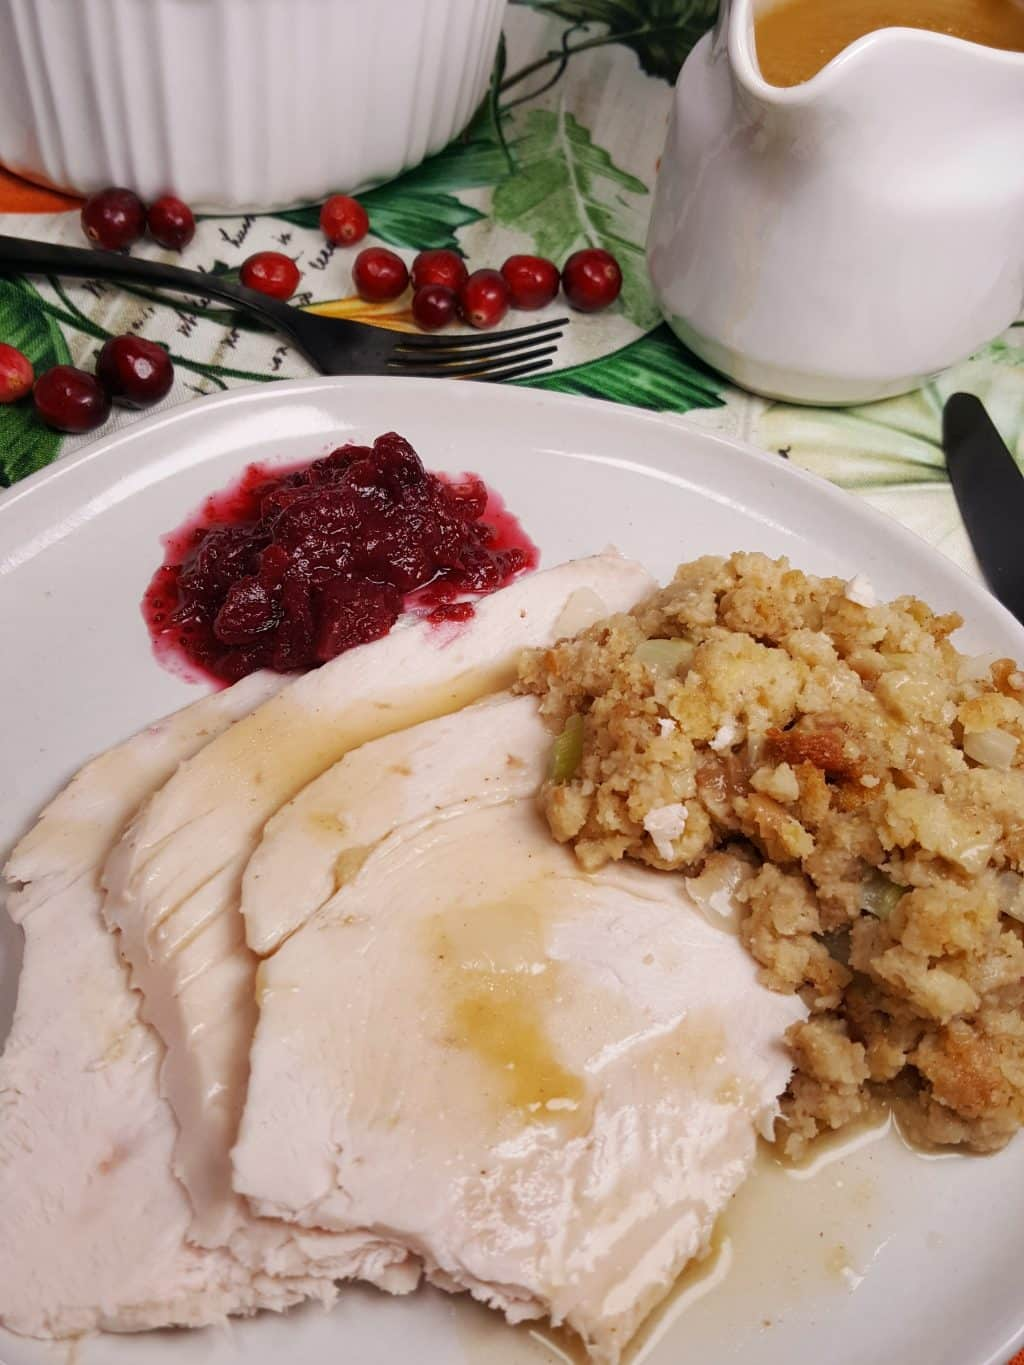 Instant Pot Turkey Breast topped with gravy.